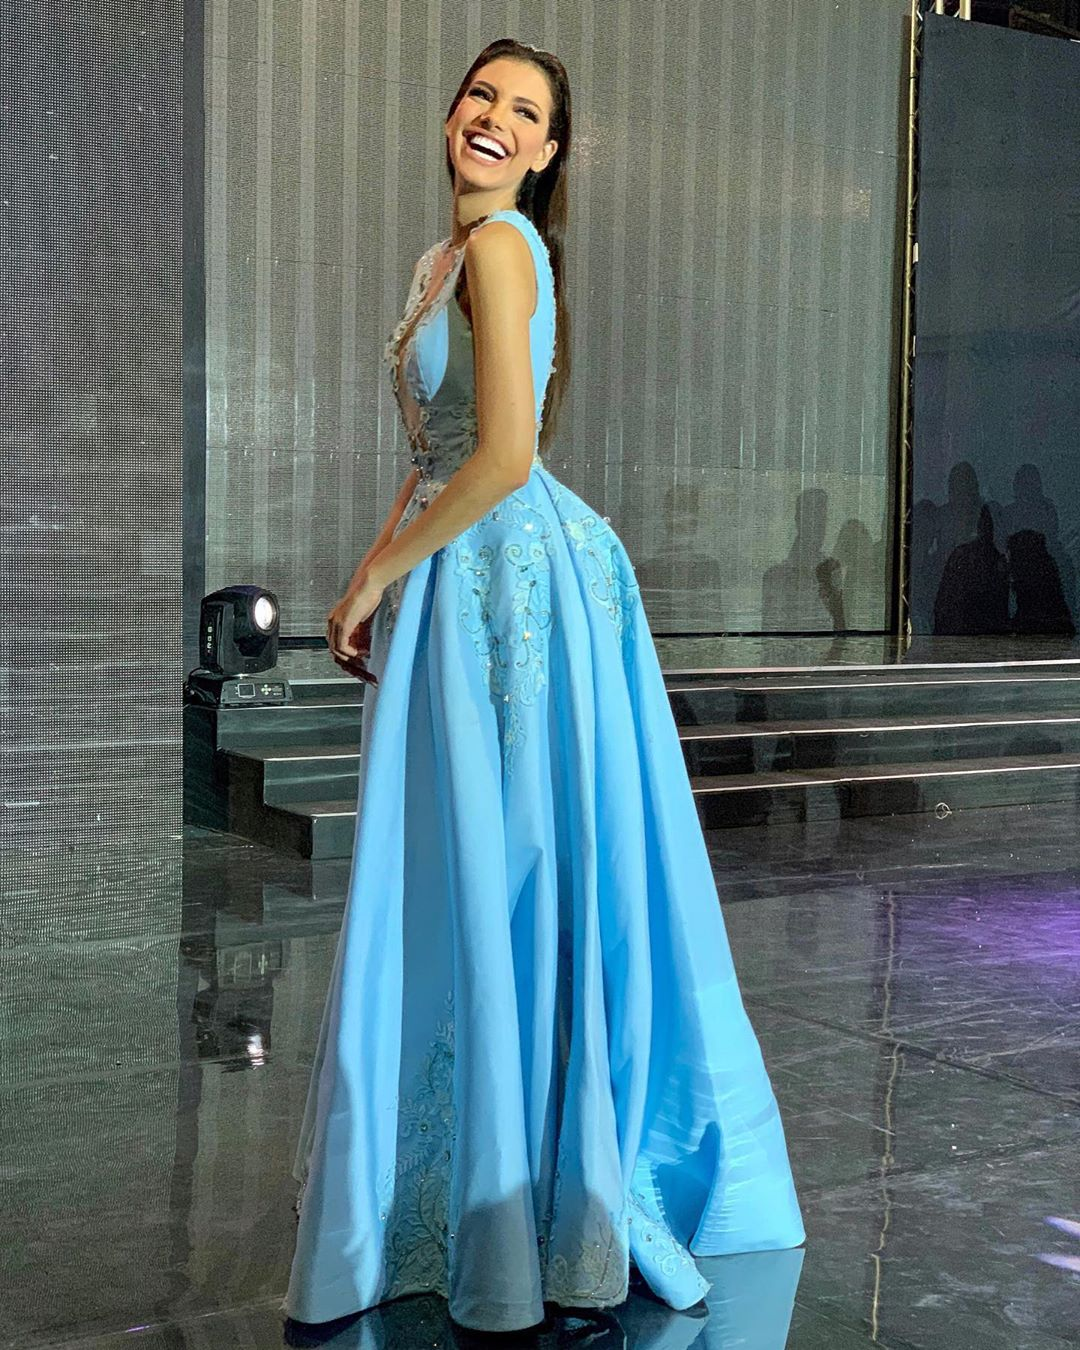 lourdes valentina figuera, miss grand international 2019. 67342810